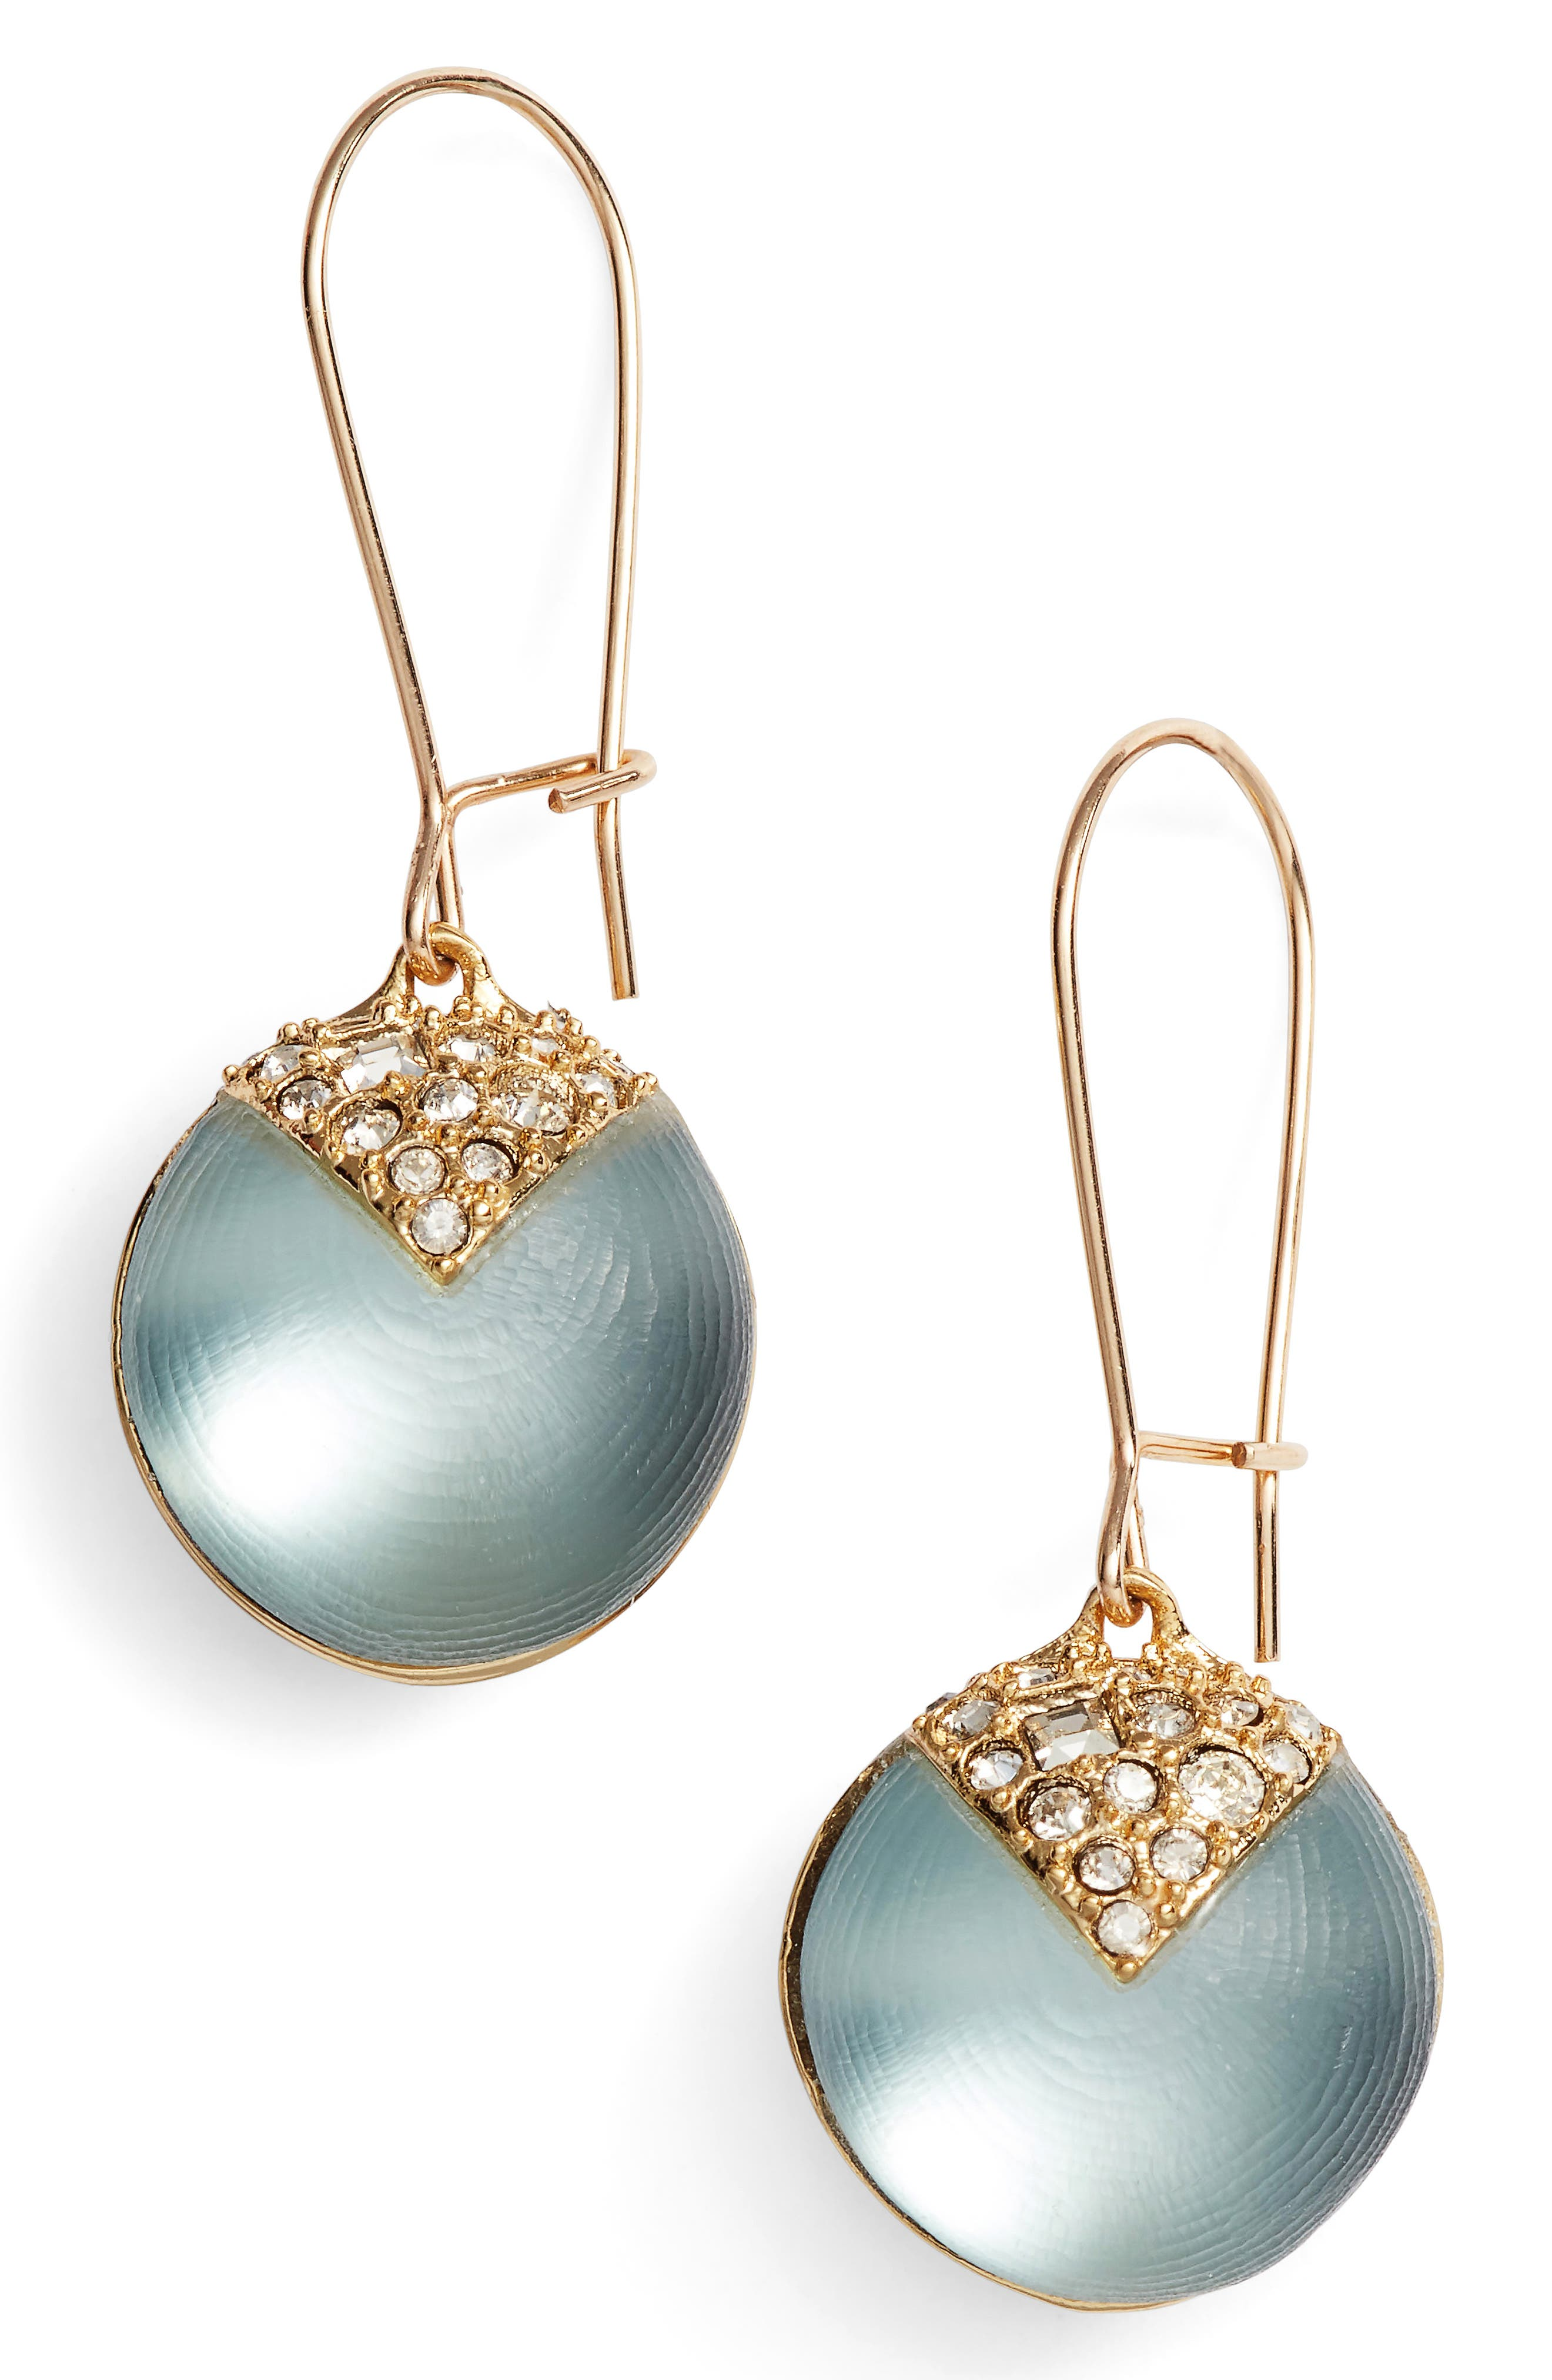 Alex Bittar Crystal Encrusted Lucite<sup>®</sup> Sphere Drop Earrings,                             Main thumbnail 1, color,                             Grey Blue